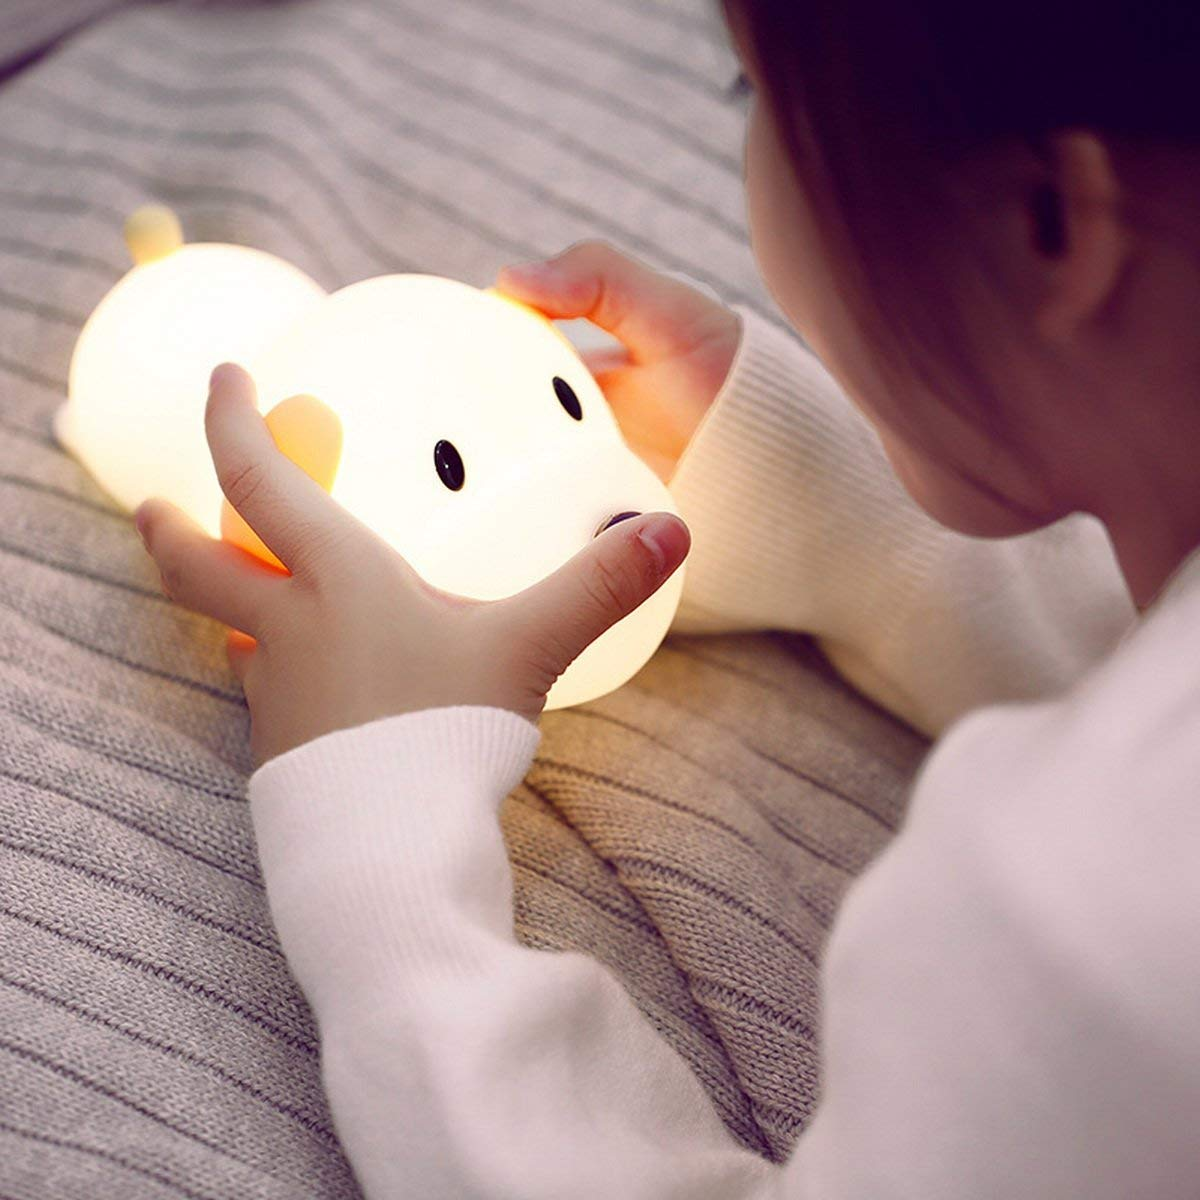 YARRAE 2018 Portable Wireless Cute Puppy Touch Sensor Nightstand Lamp manufacture in shenzhen